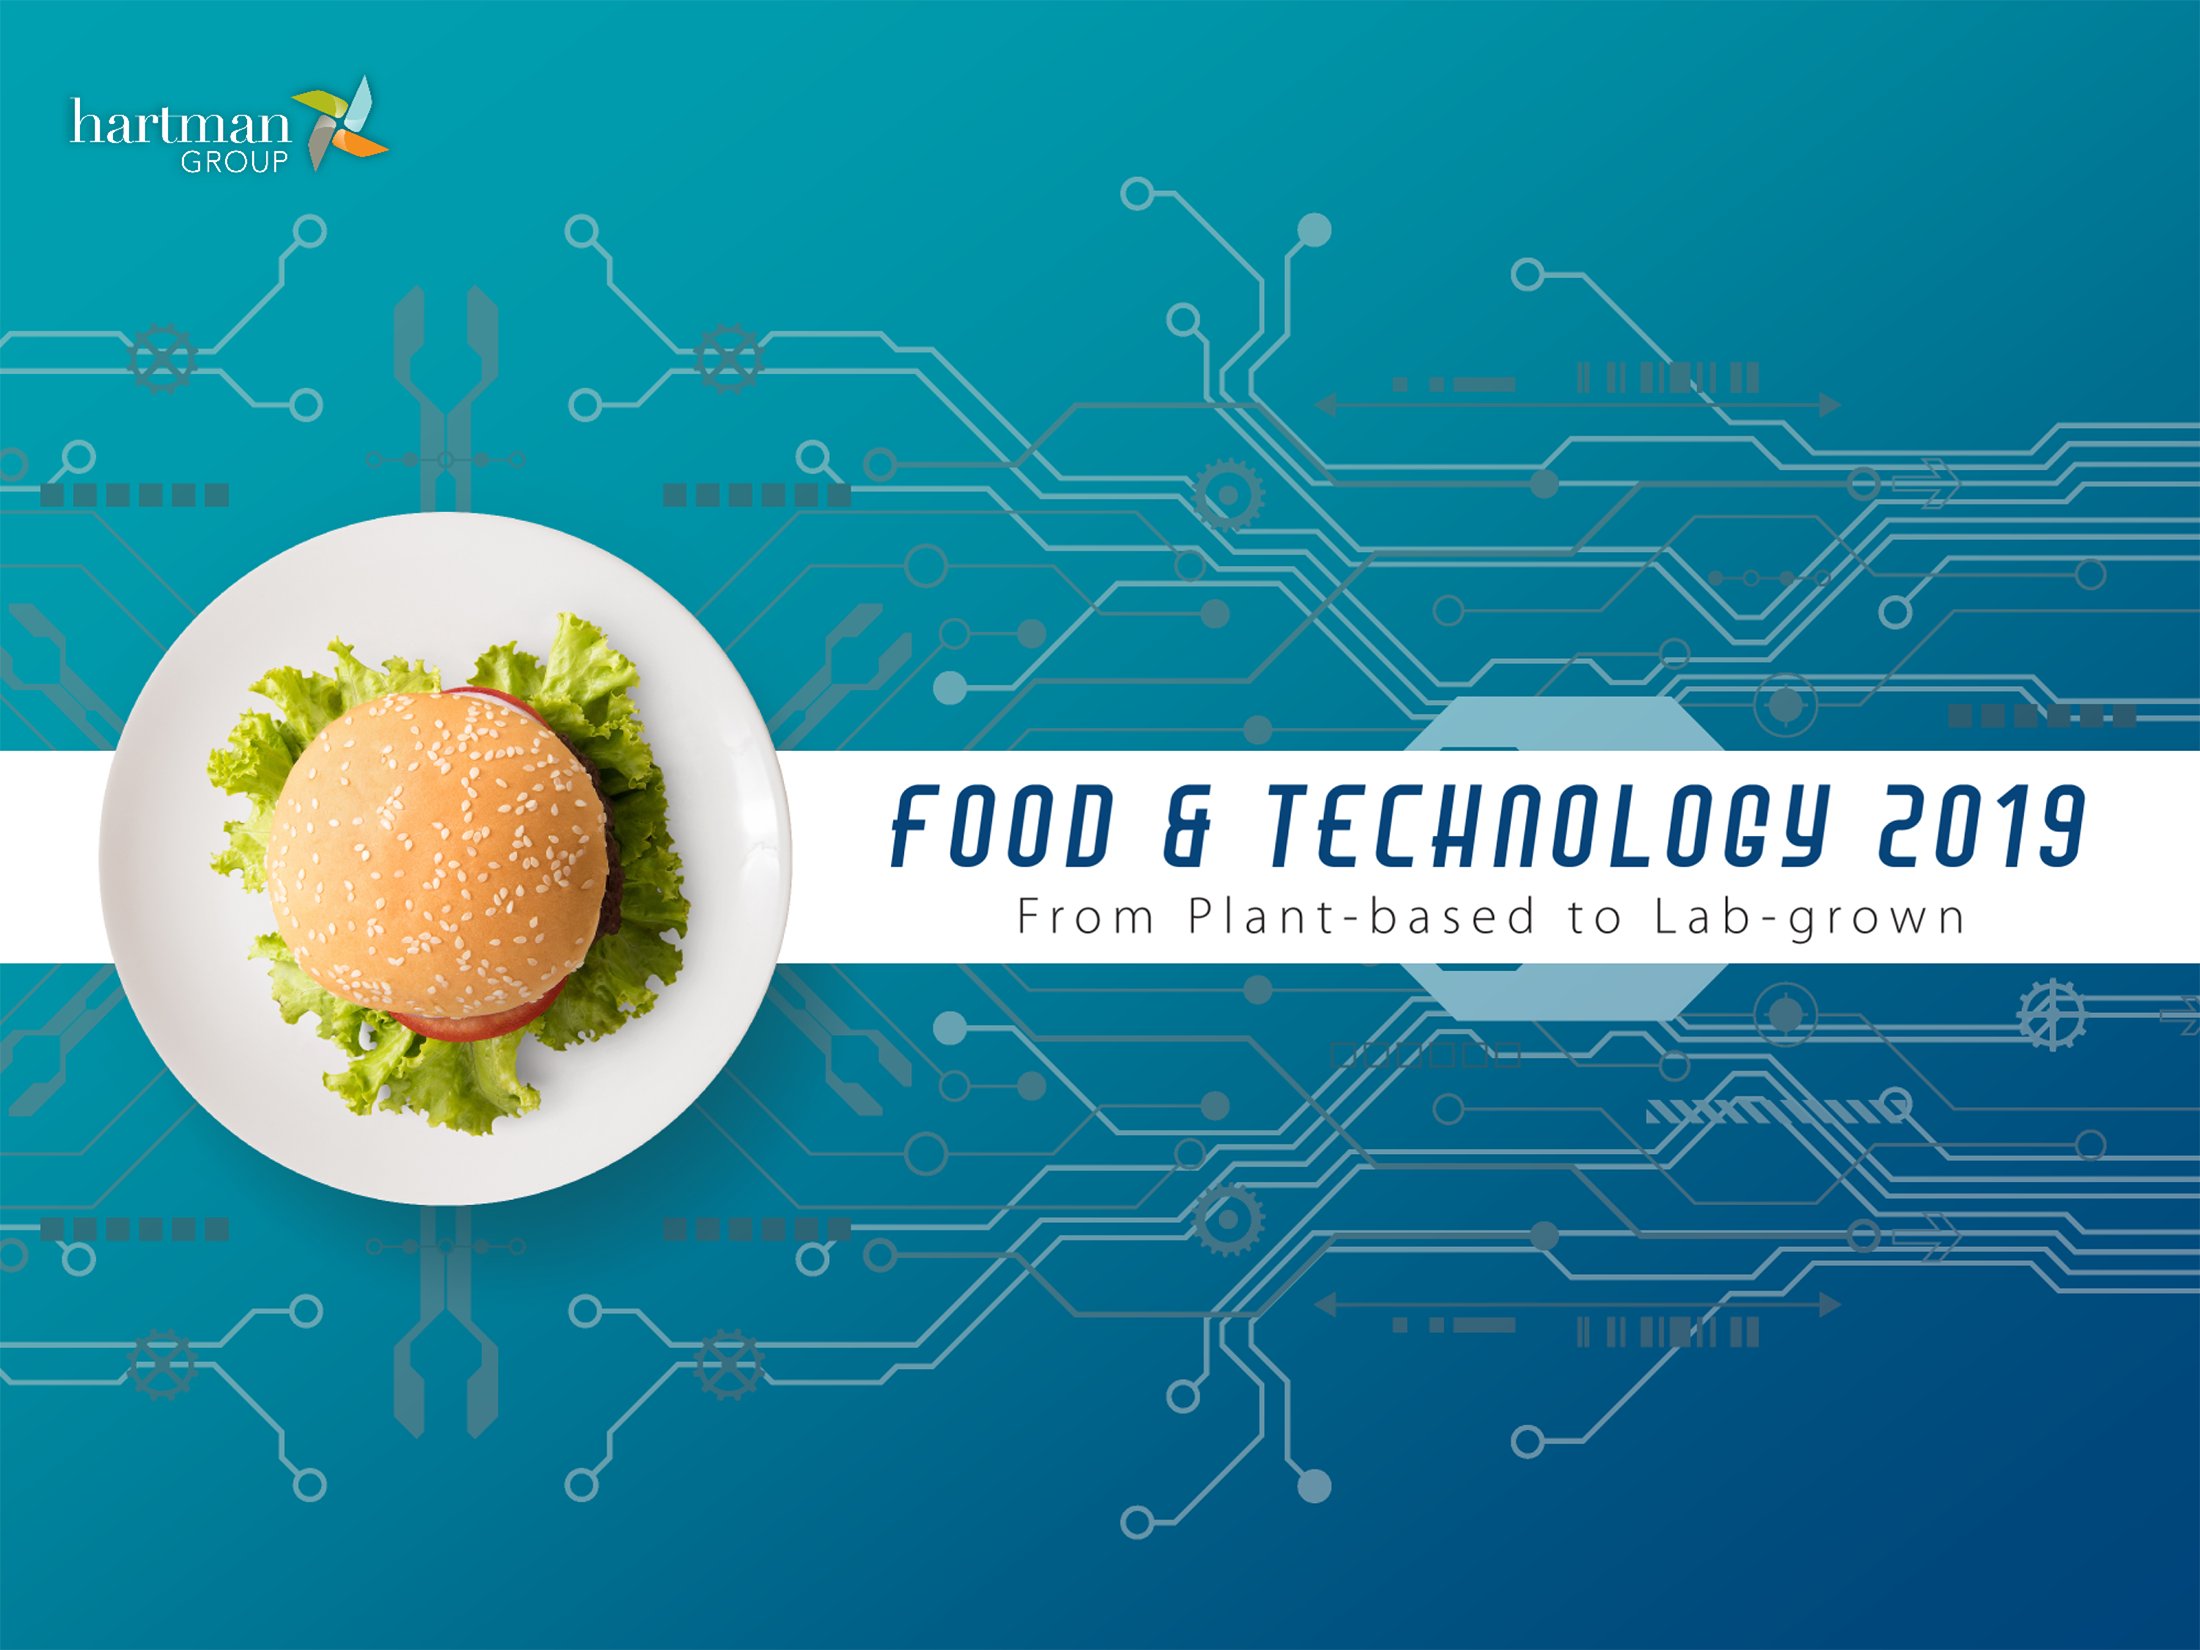 Food & Technology 2019: From Plant-Based to Lab-Grown